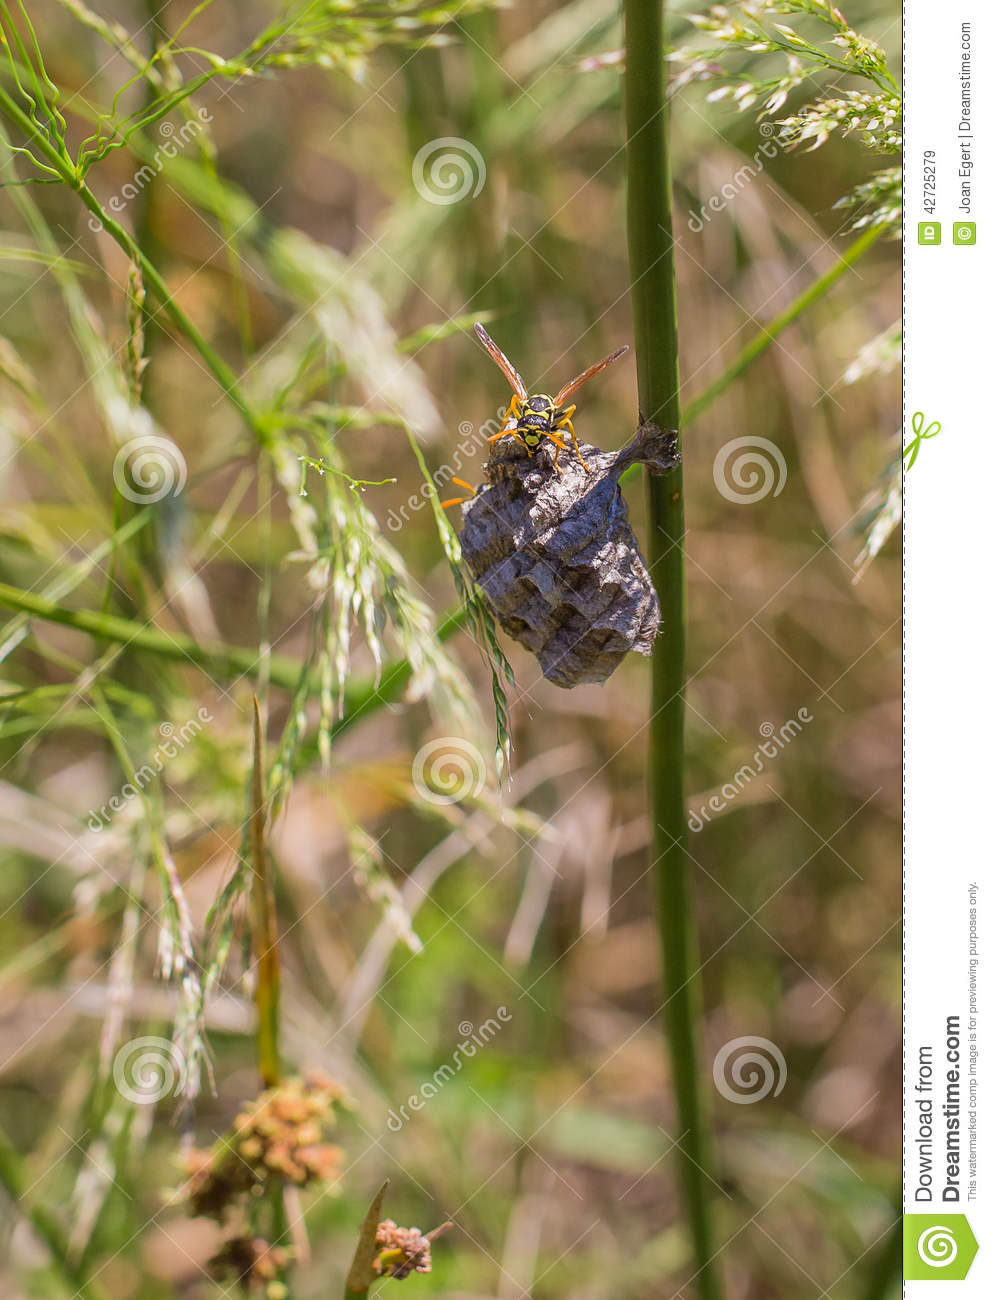 European Paper Wasp on its nest